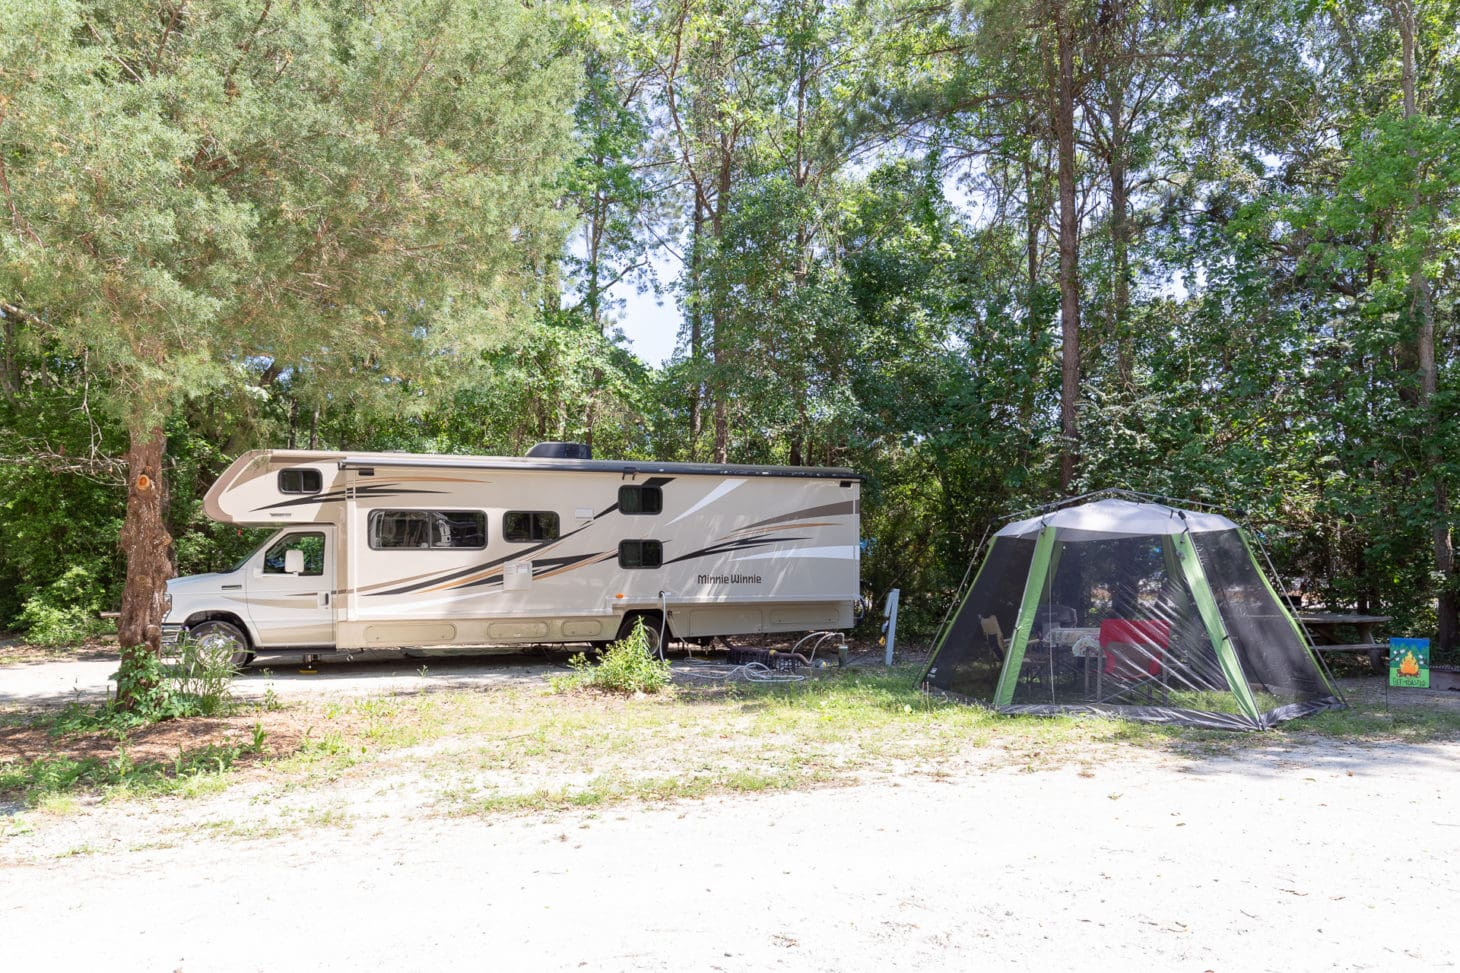 Motorhome parked at campsite with tent set up in wooded area